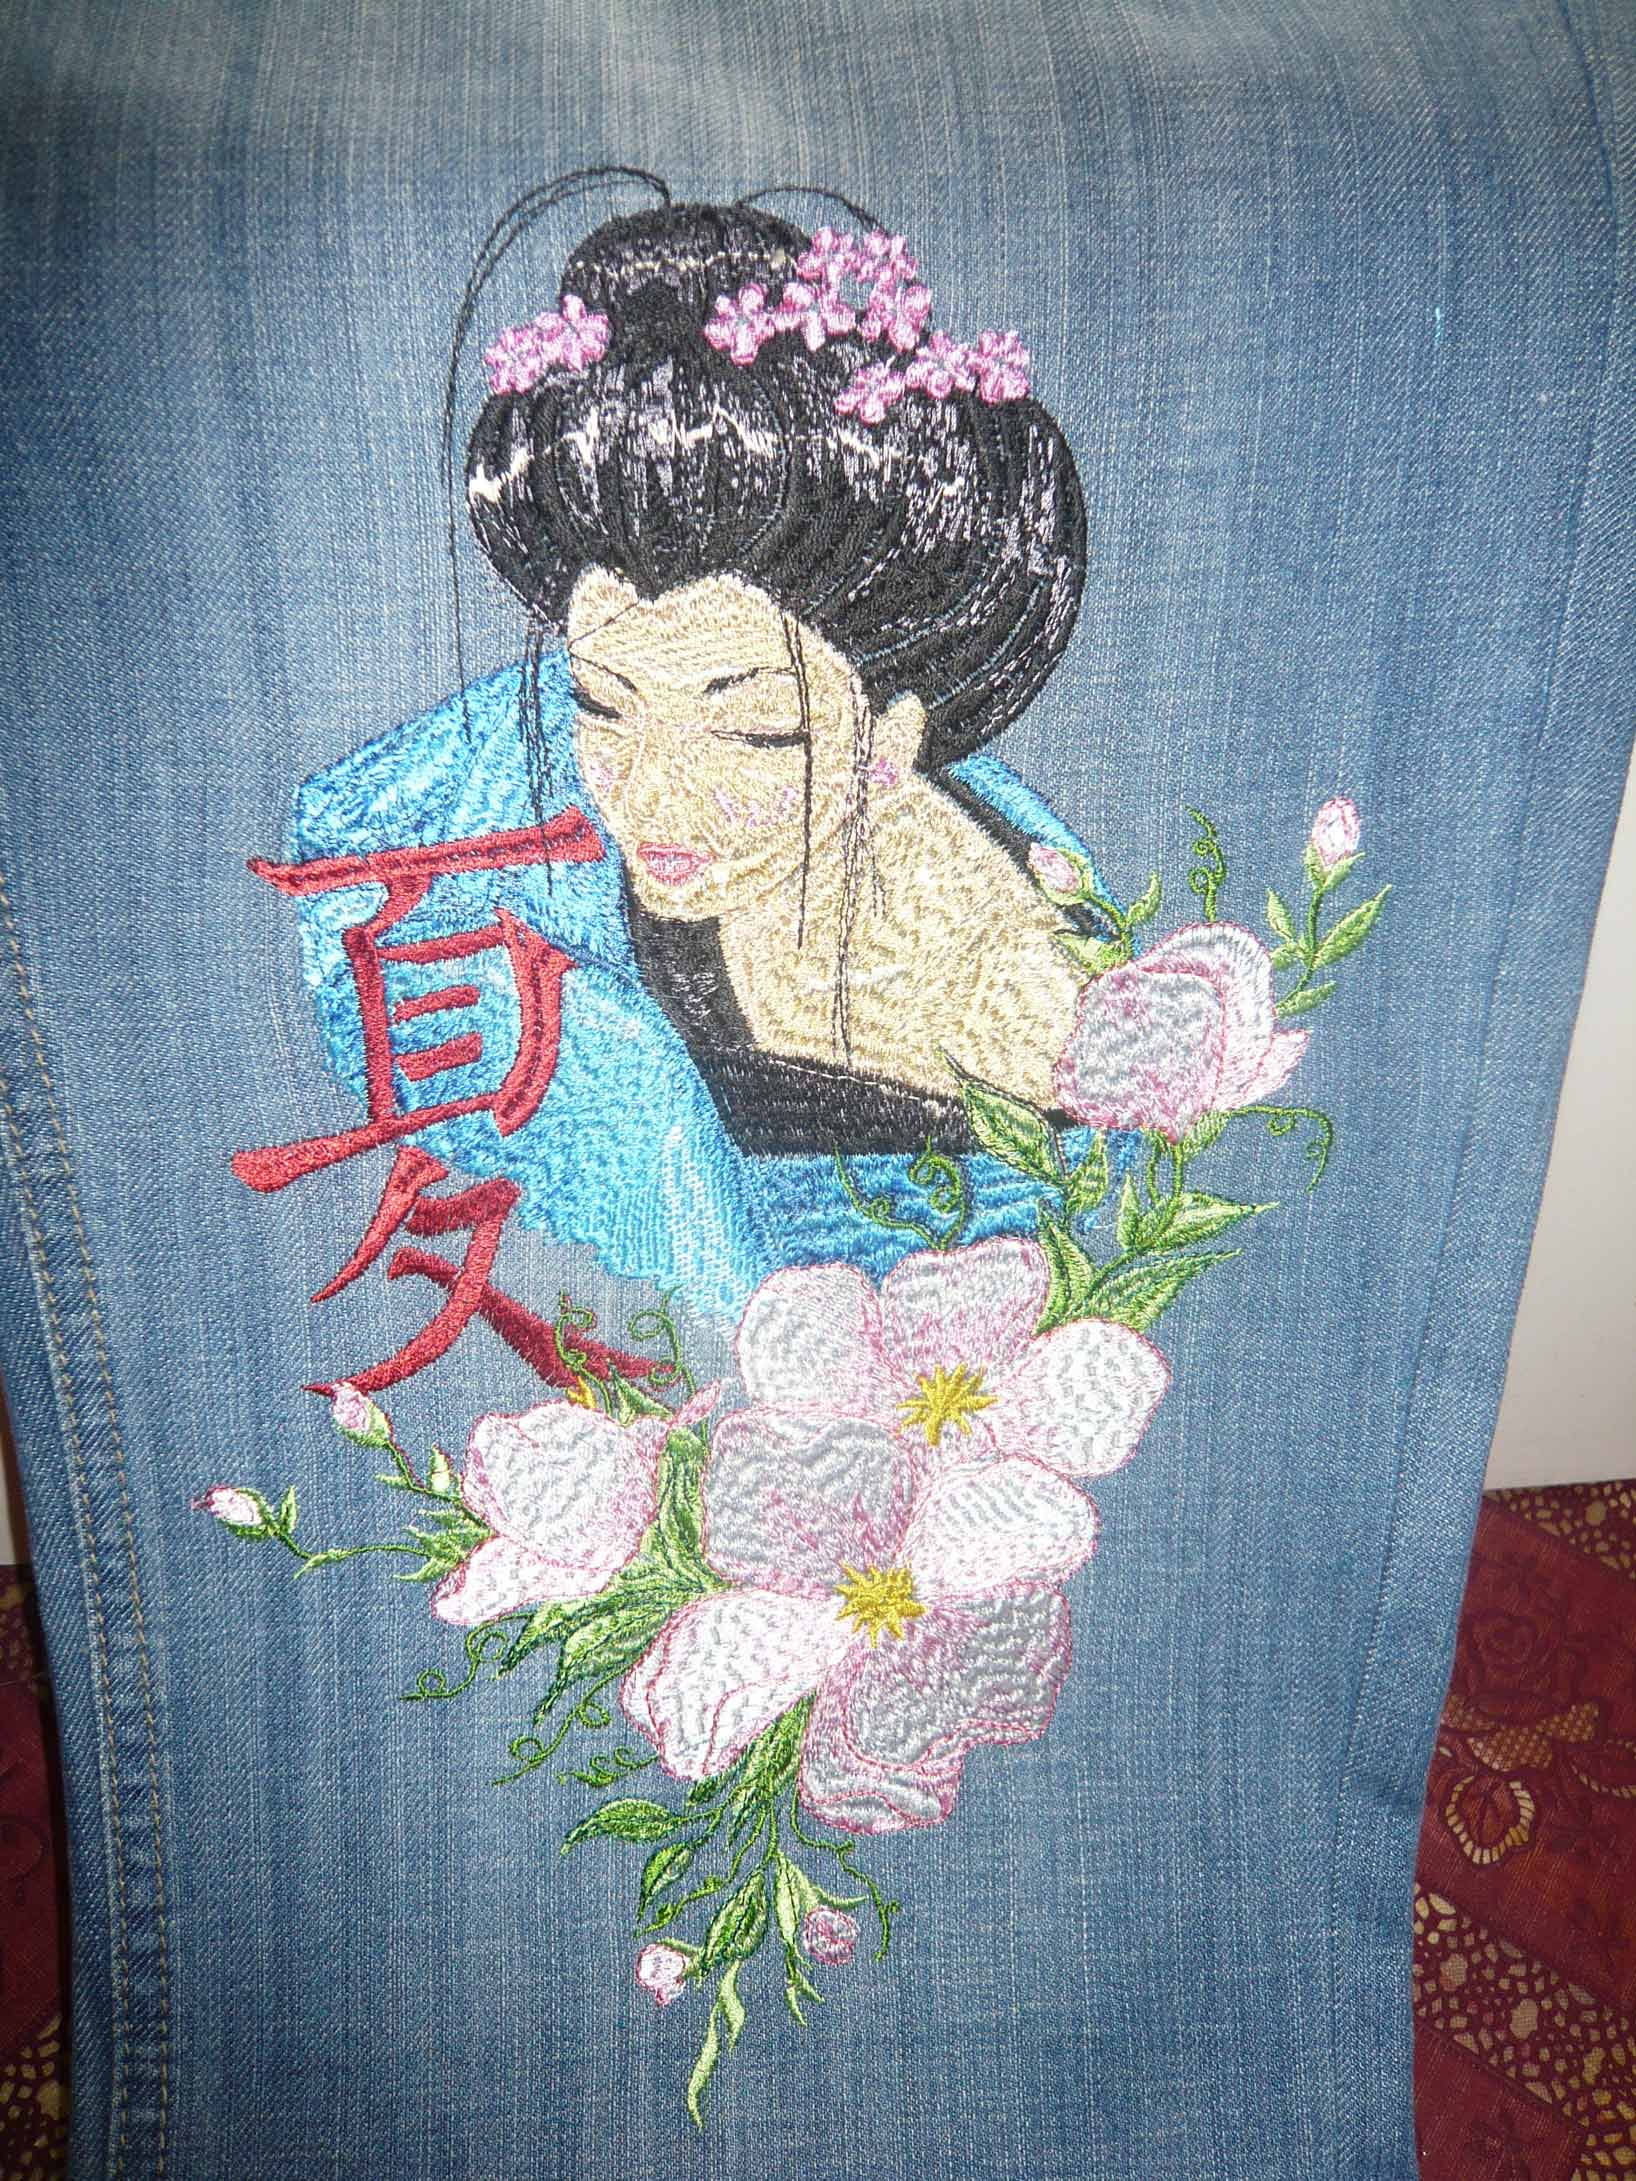 Geisha with hieroglyphic embroidery design on jeans